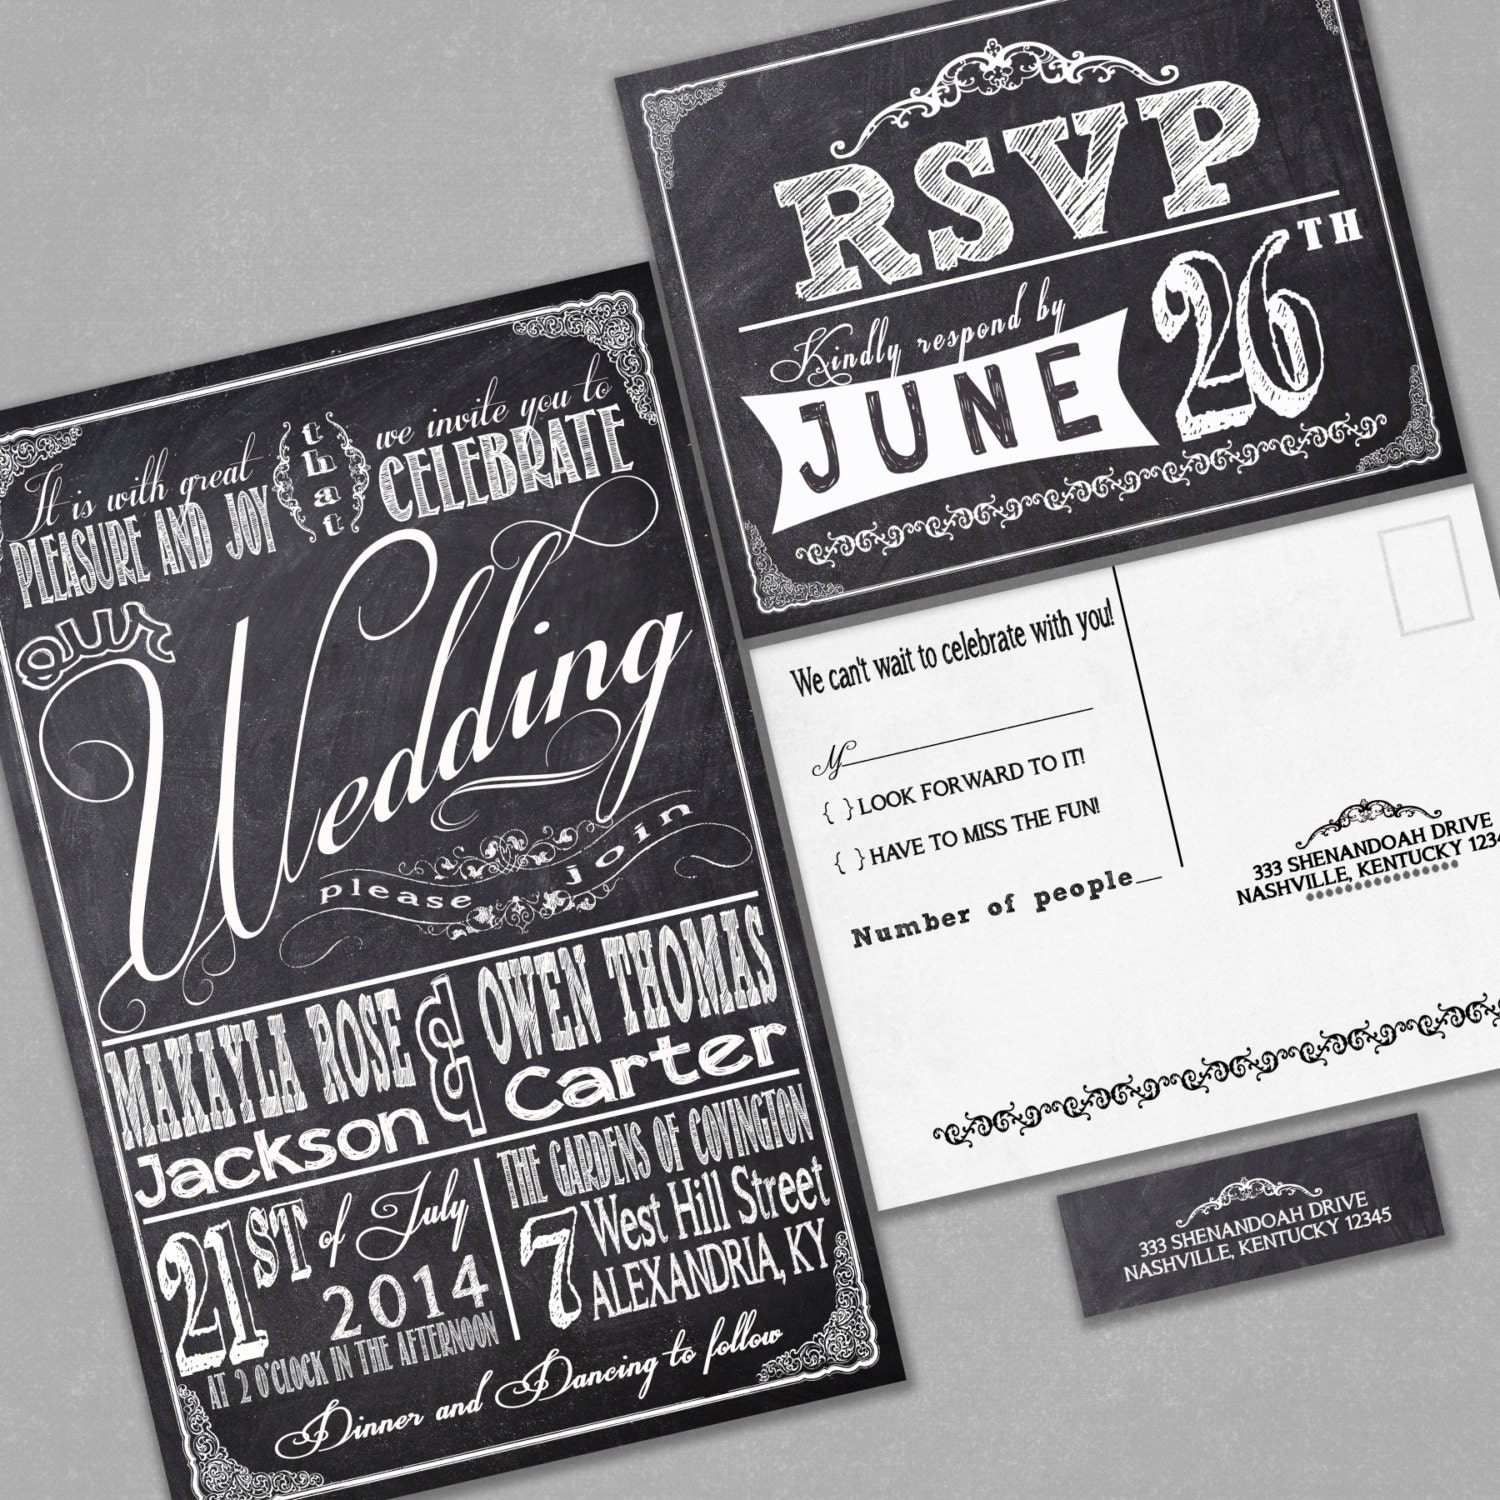 Wedding Invitation Response Cards: Chalkboard Wedding Invitations With RSVP Cards And Address